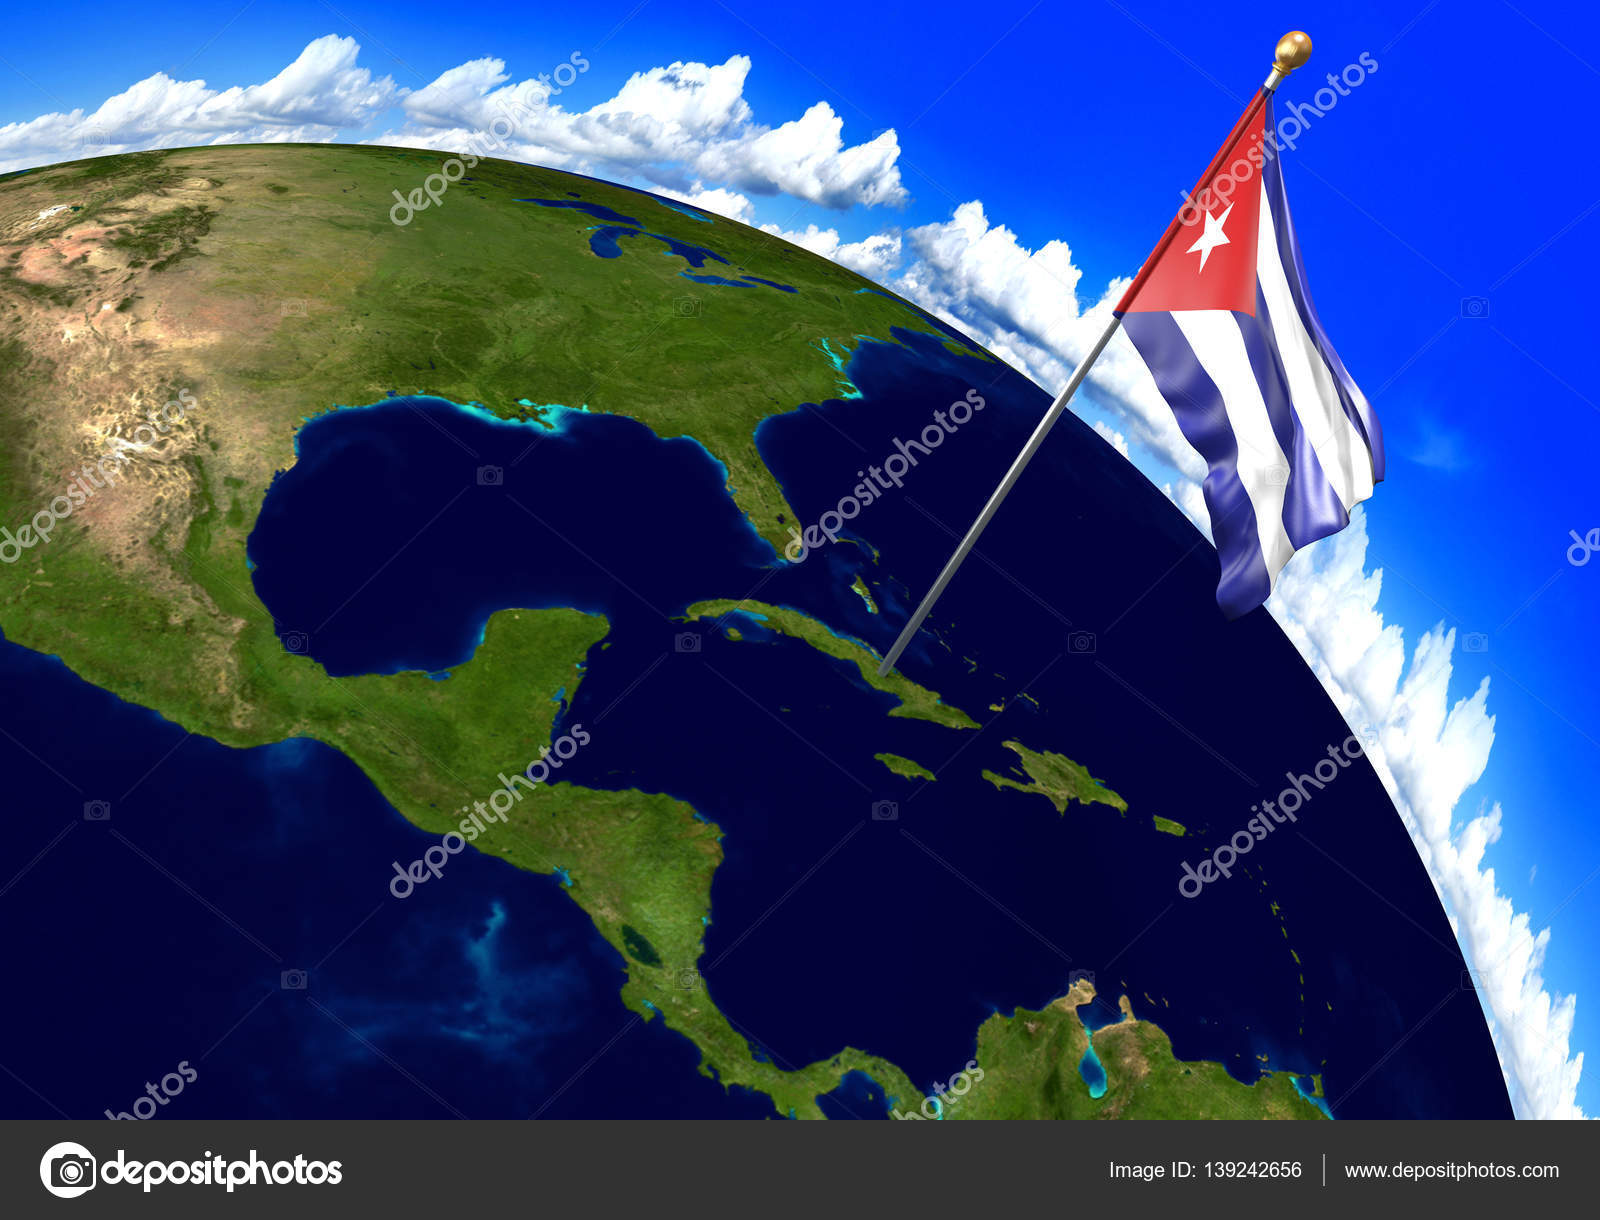 Cuba national flag marking the country location on world map 3d 3d render of the national flag of cuba over the geographic location of the country on a world map parts of this image furnished by nasa photo by kagenmi gumiabroncs Gallery